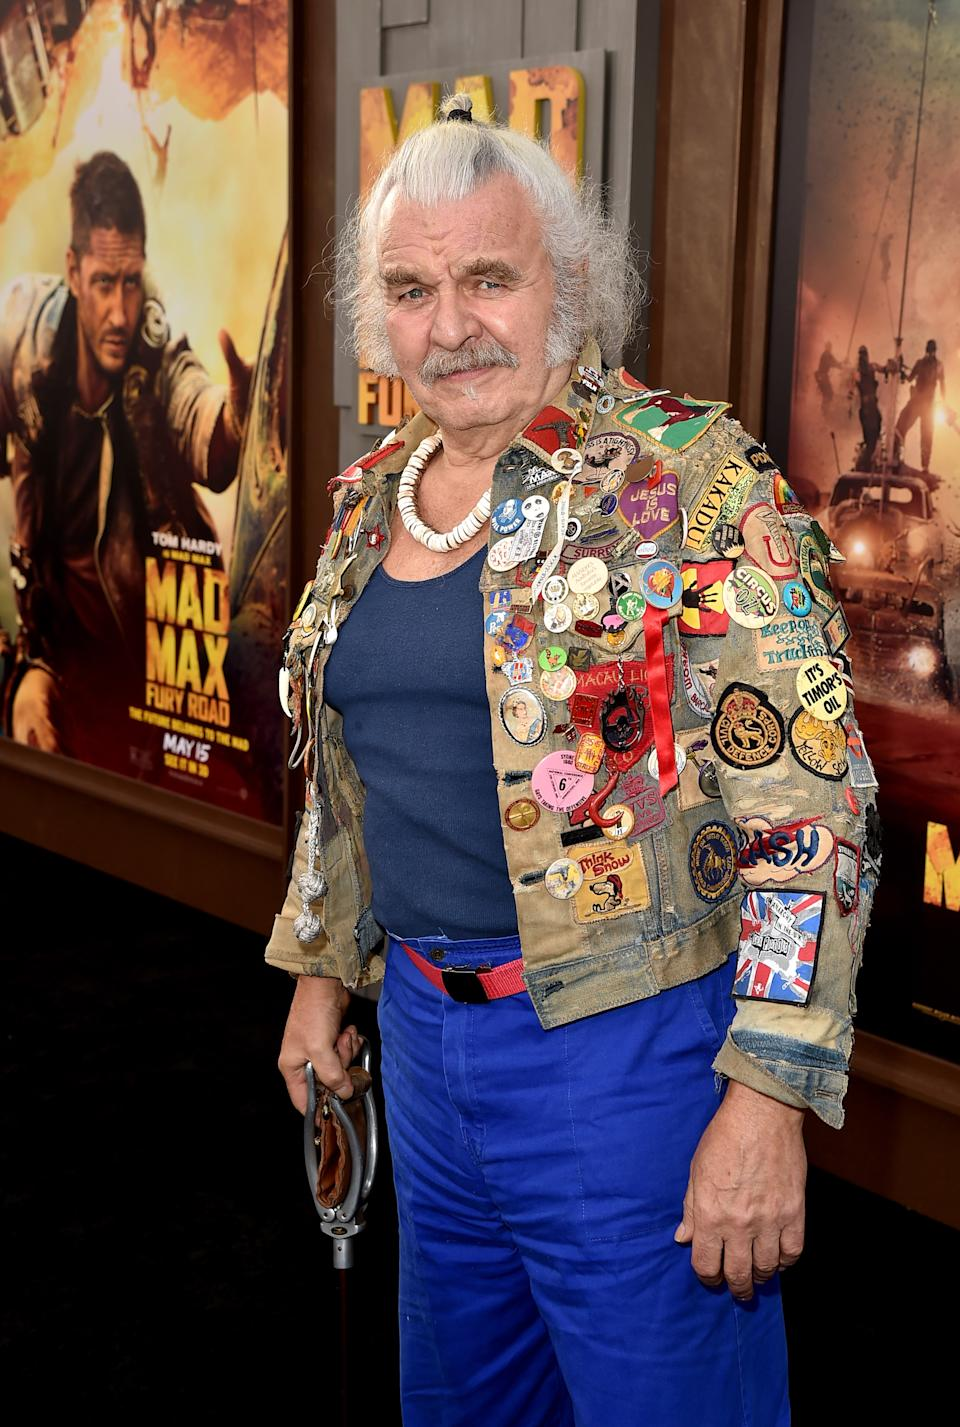 """Actor Hugh Keays-Byrne wearing blue pants and a jacked covered in colourful patches at the premiere of Warner Bros. Pictures' """"Mad Max: Fury Road"""" at TCL Chinese Theatre on May 7, 2015 in Hollywood, California."""